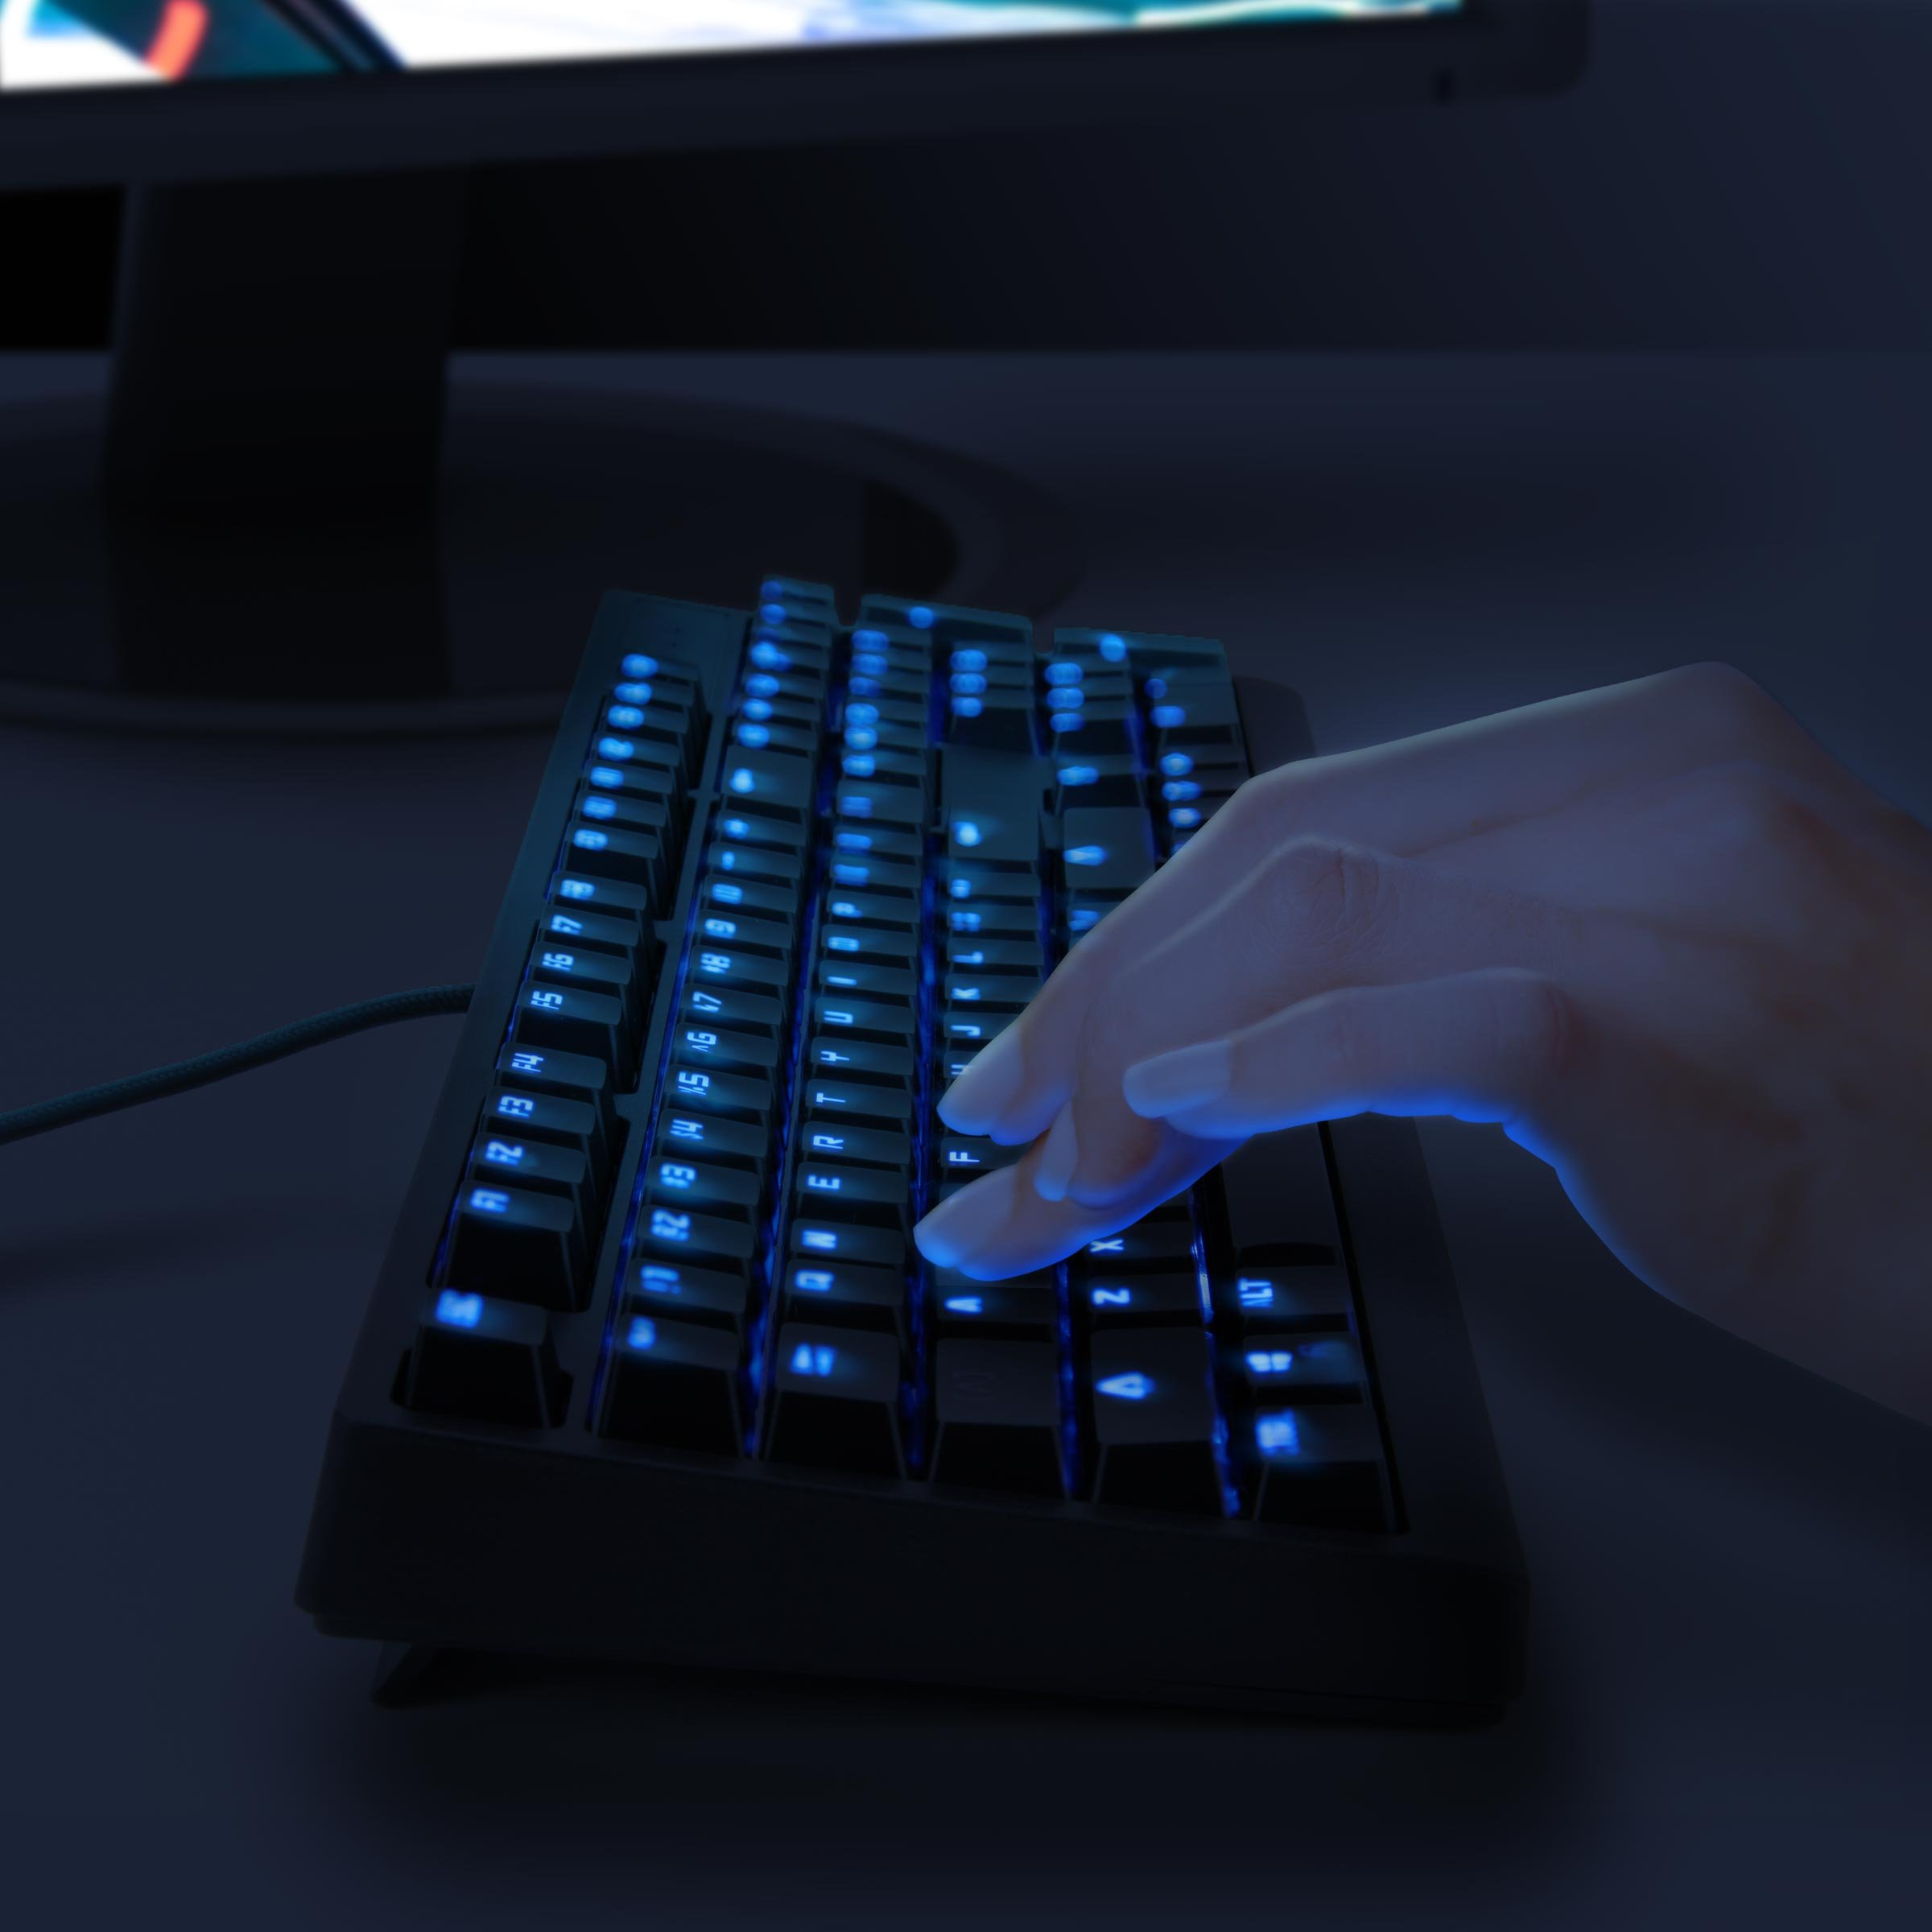 ENHANCE GX-K5 FPS Mechanical Gaming Keyboard with Blue LED Backlighting & TTC Brown Tactile Switches – Great for Counter-Strike: Global Offensive , Overwatch , Call of Duty: Black Ops III & More Games by ENHANCE (Image #8)